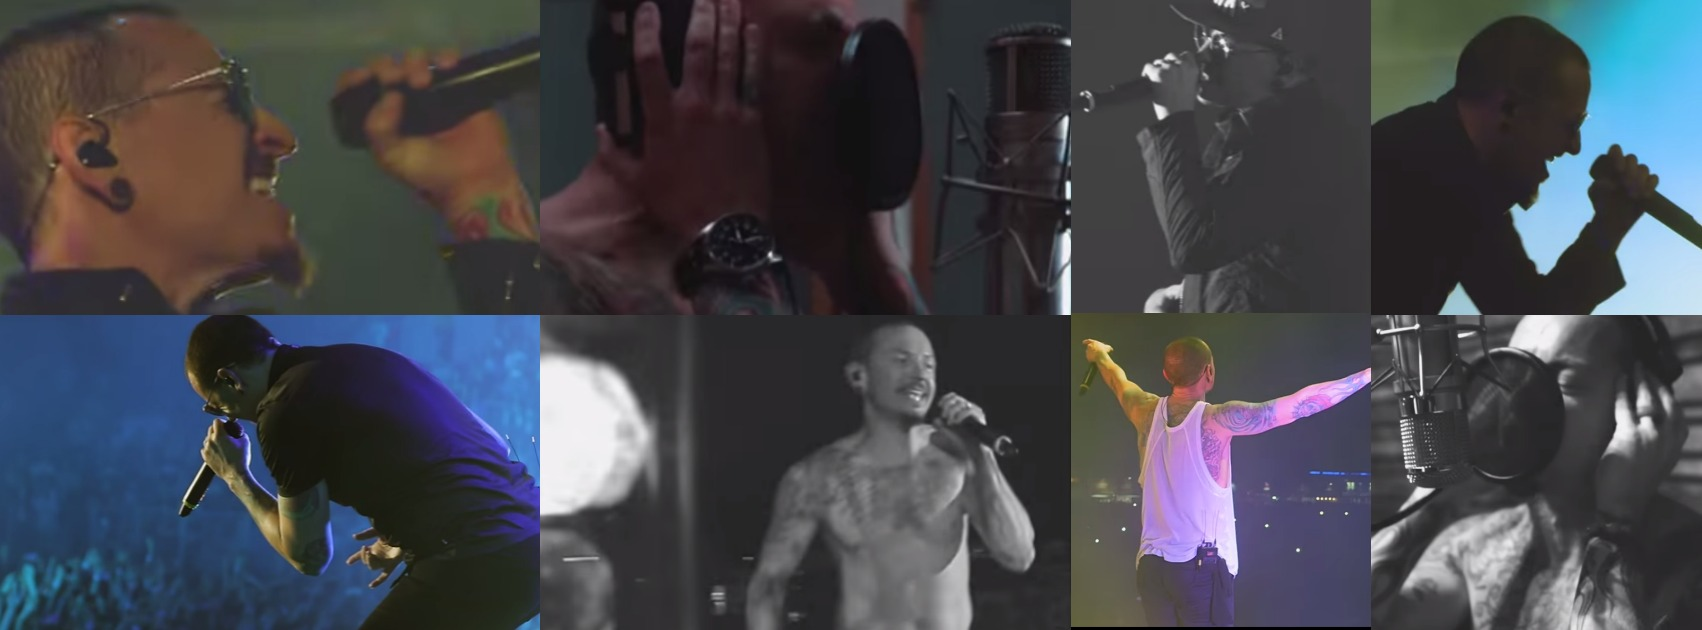 Farewell, Chazzy - A Letter to Chester Bennington